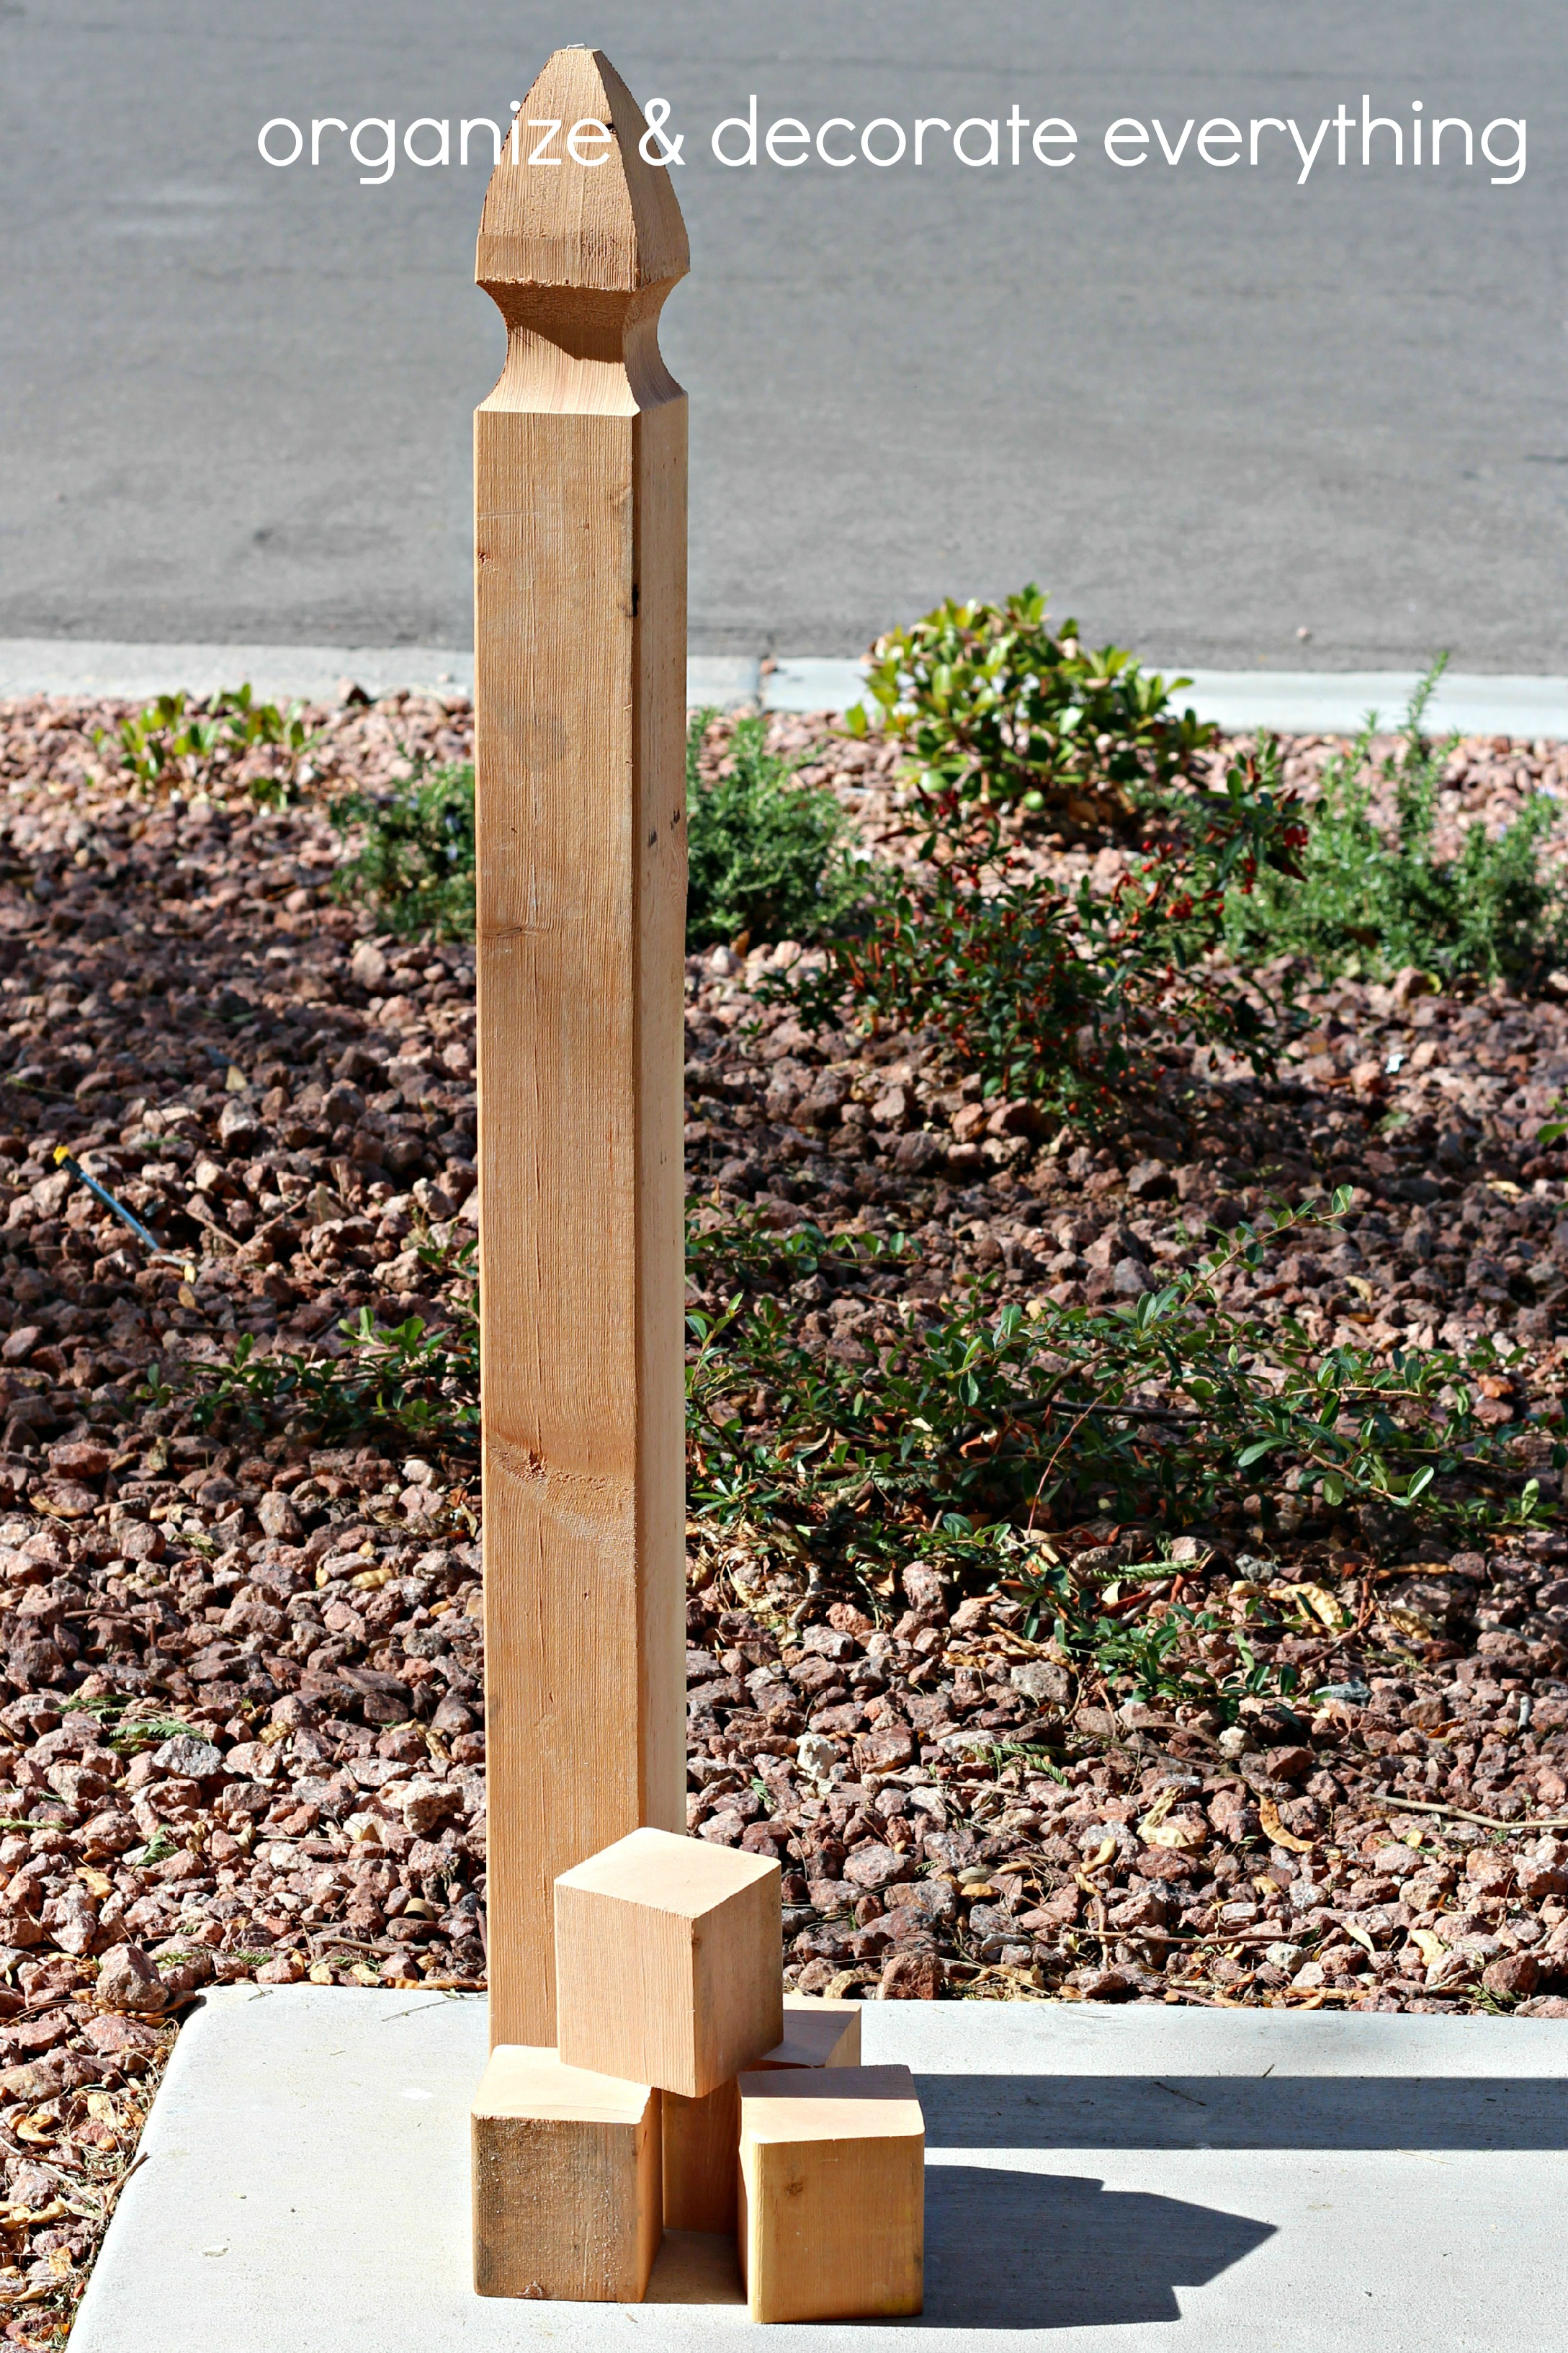 Make your own bed risers - I Started With This Fence Post From Home Depot It Was My Lucky Day It Was On Sale For A Whole 1 I Wish I Needed More Of Them For Something